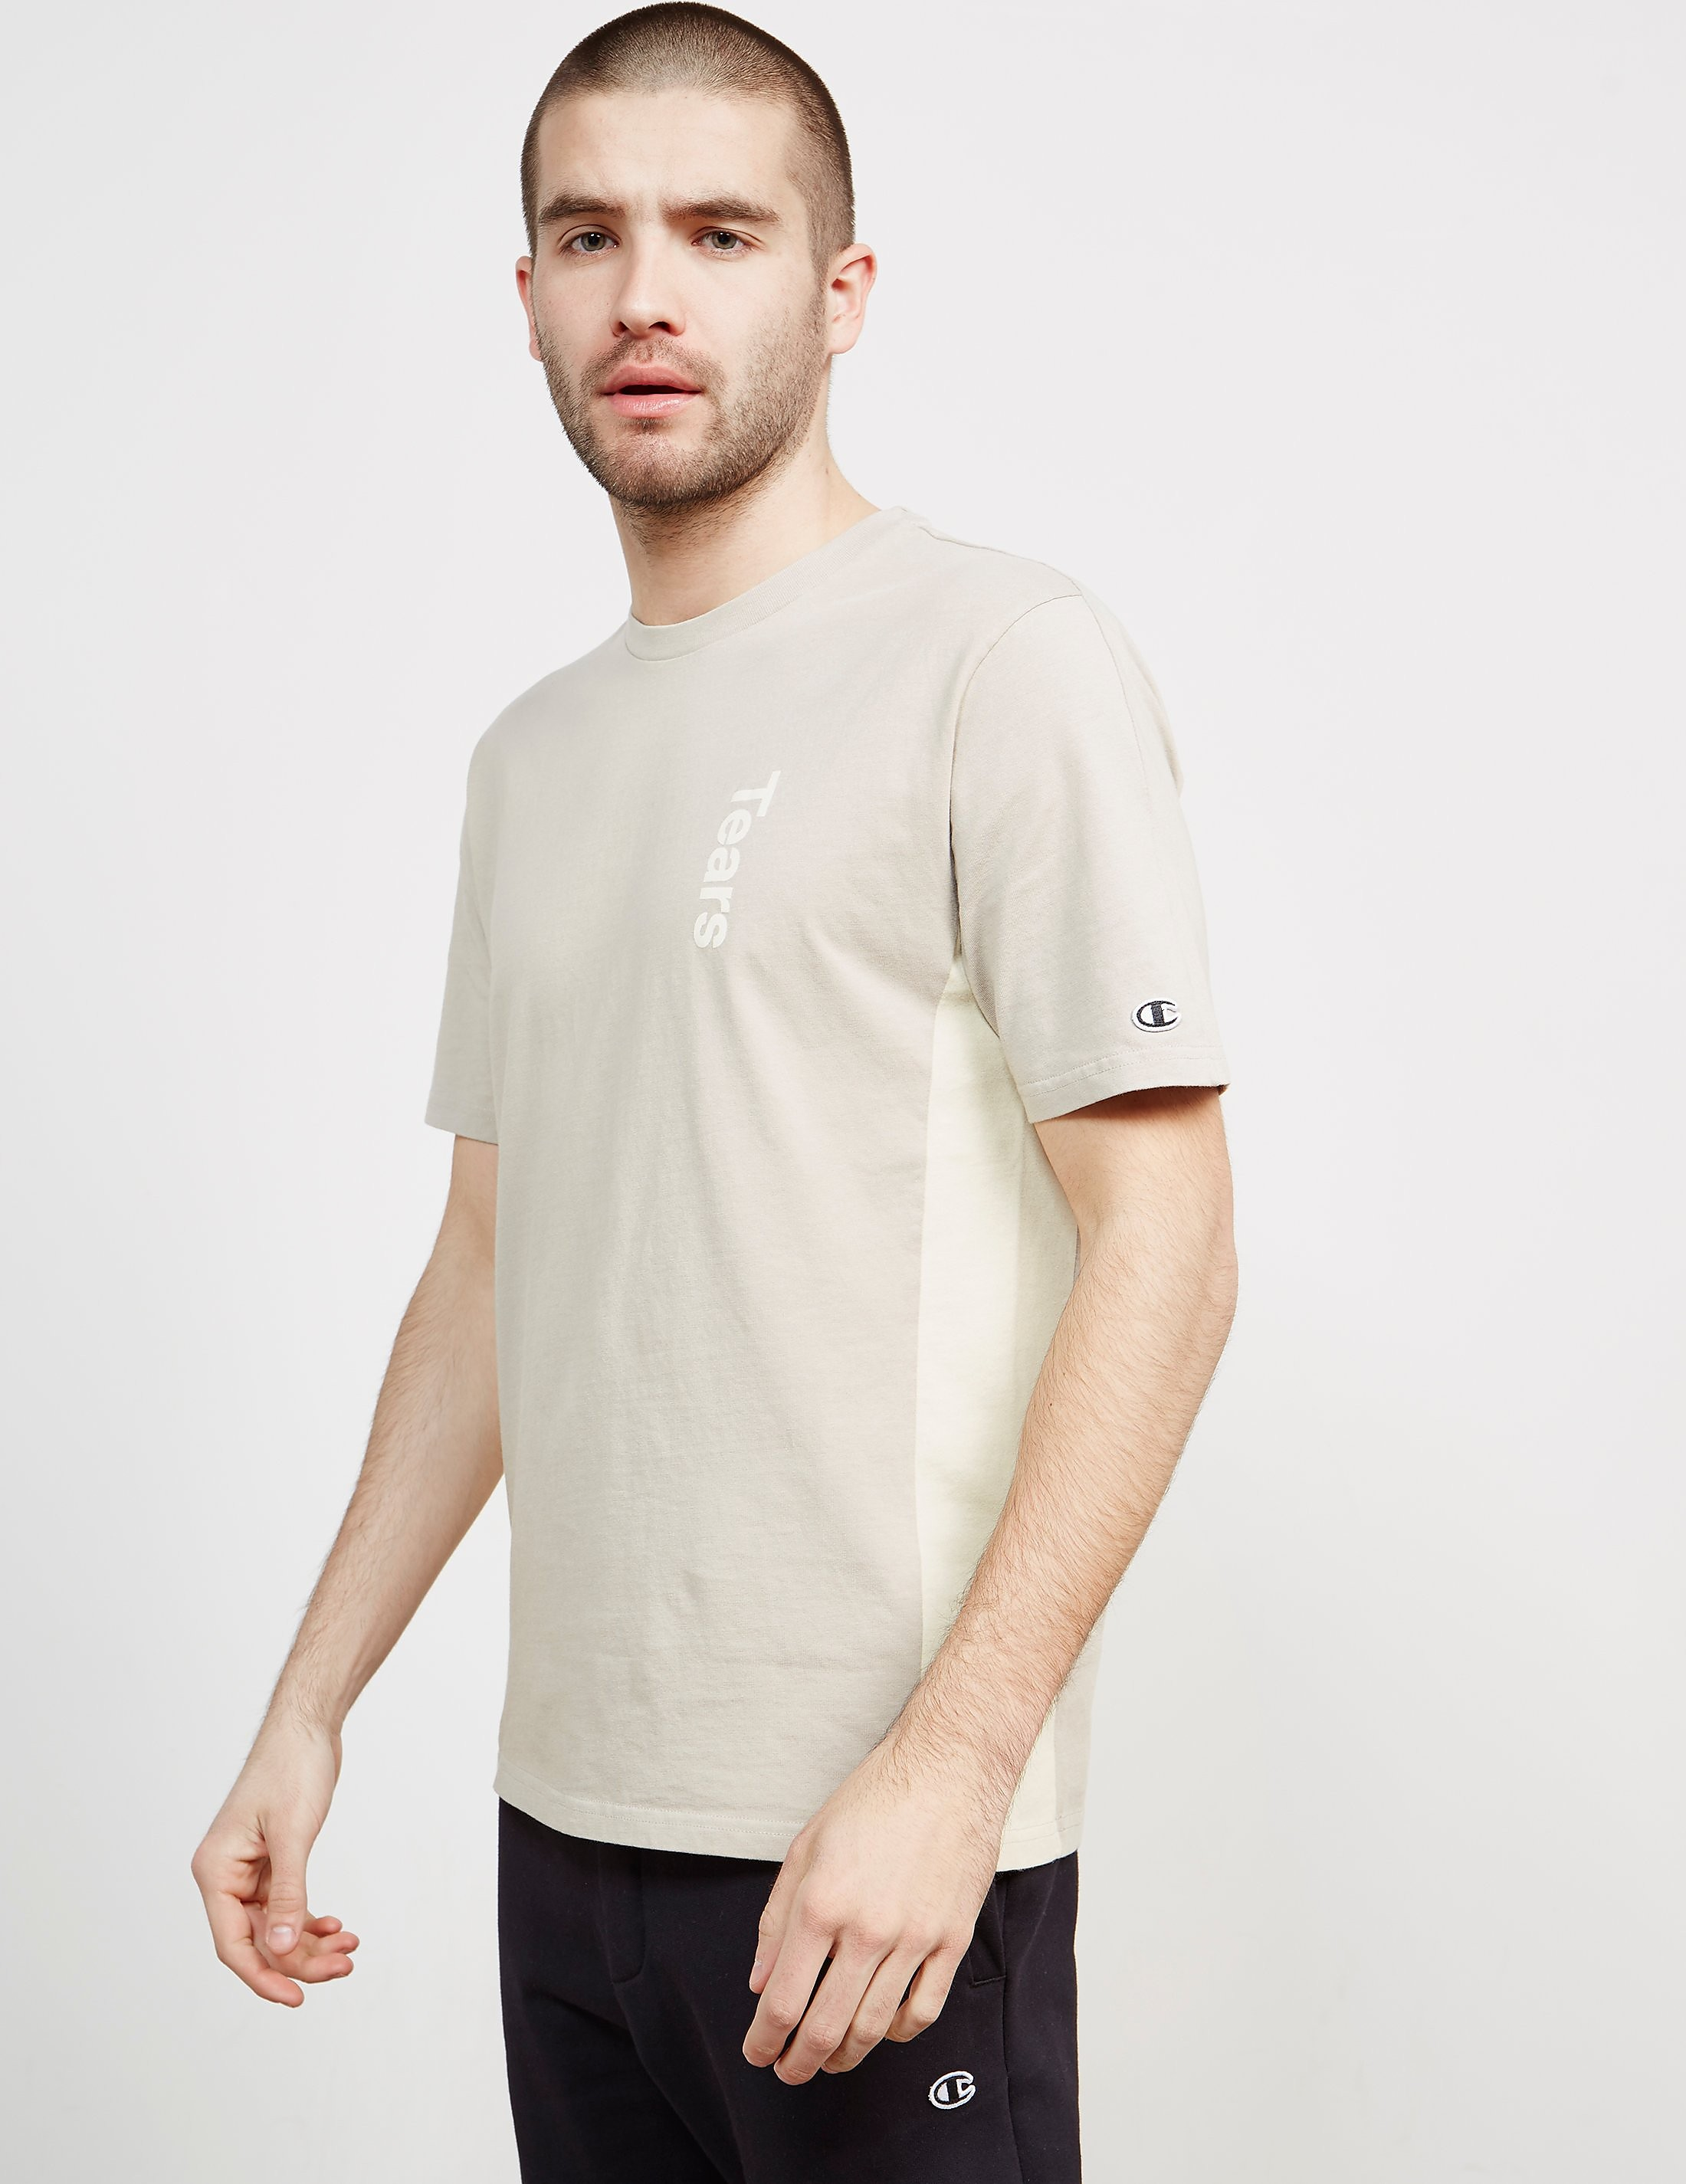 Champion x Wood Wood Tears Short Sleeve T-Shirt